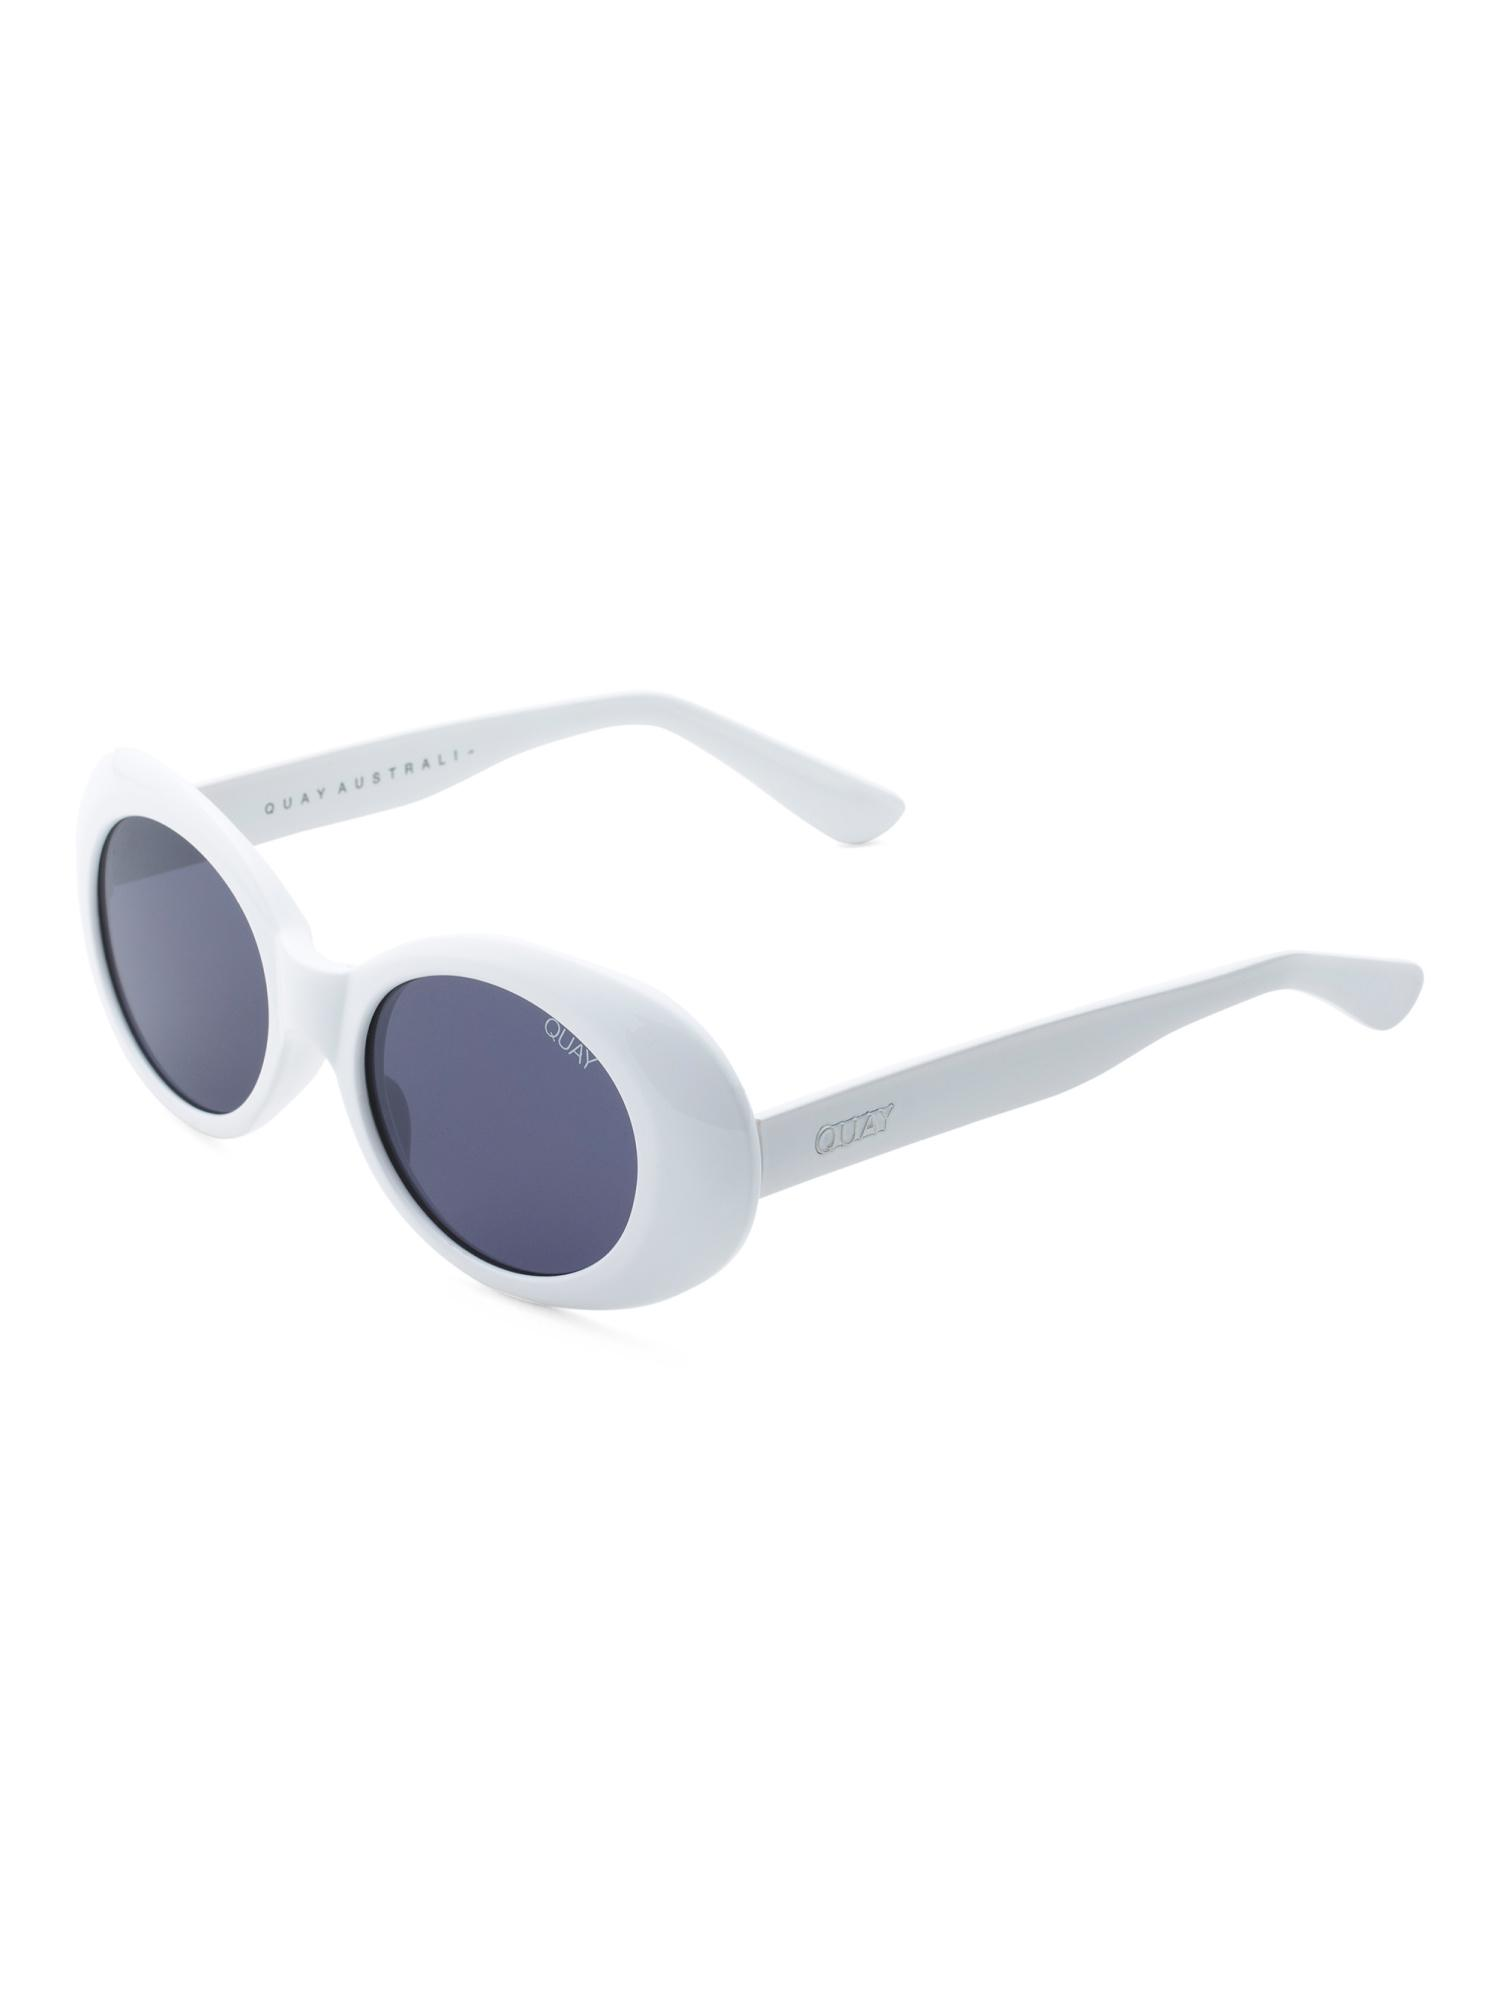 5810df0a9143 Tj Maxx Frivolous Sunglasses in White - Lyst